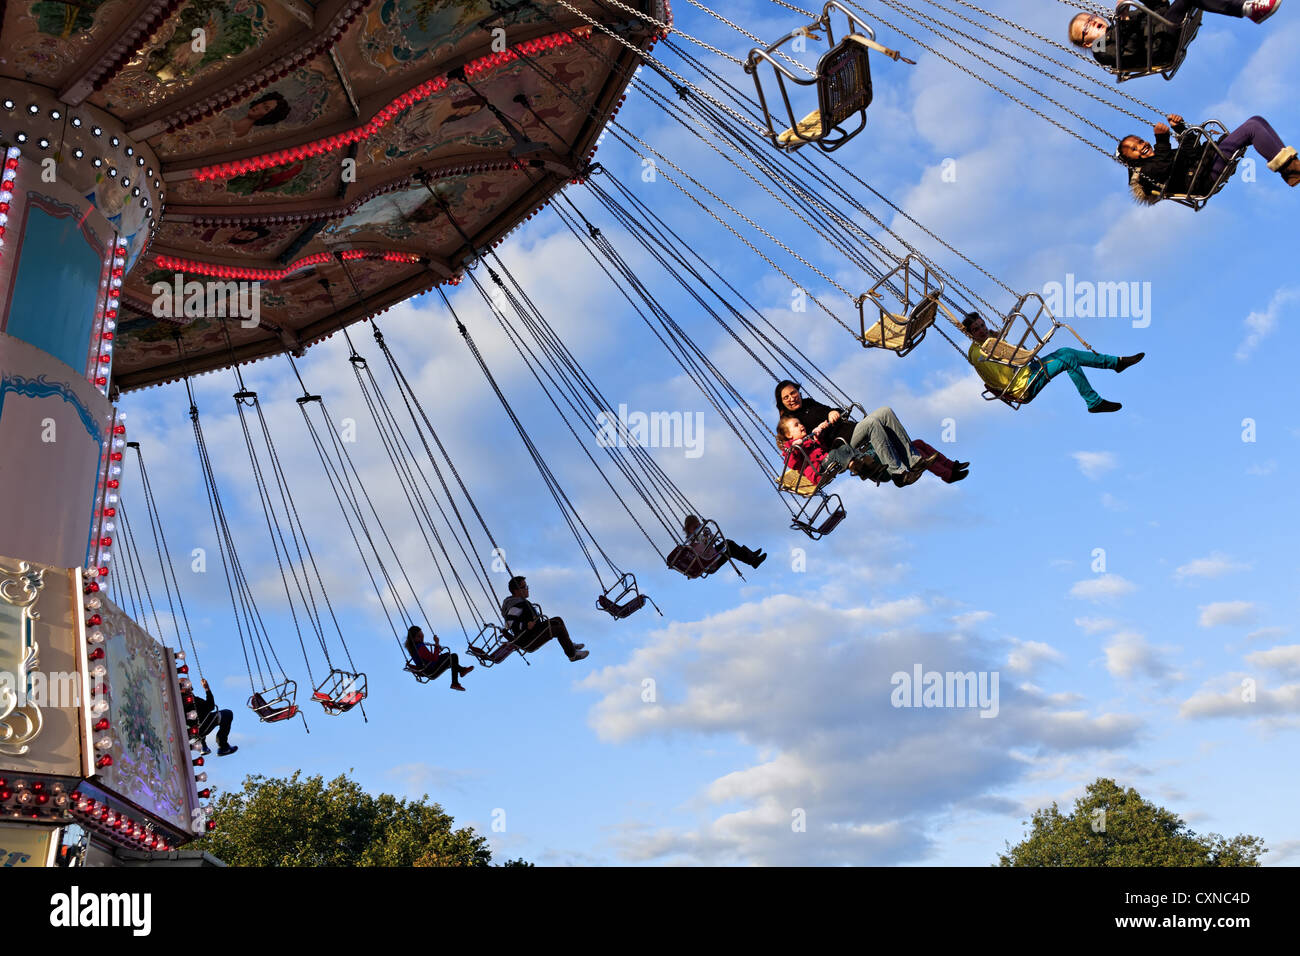 A Carousel spins fairgoers sideways at   Nottingham's  historic Goose Fair. Nottingham, UK - Stock Image